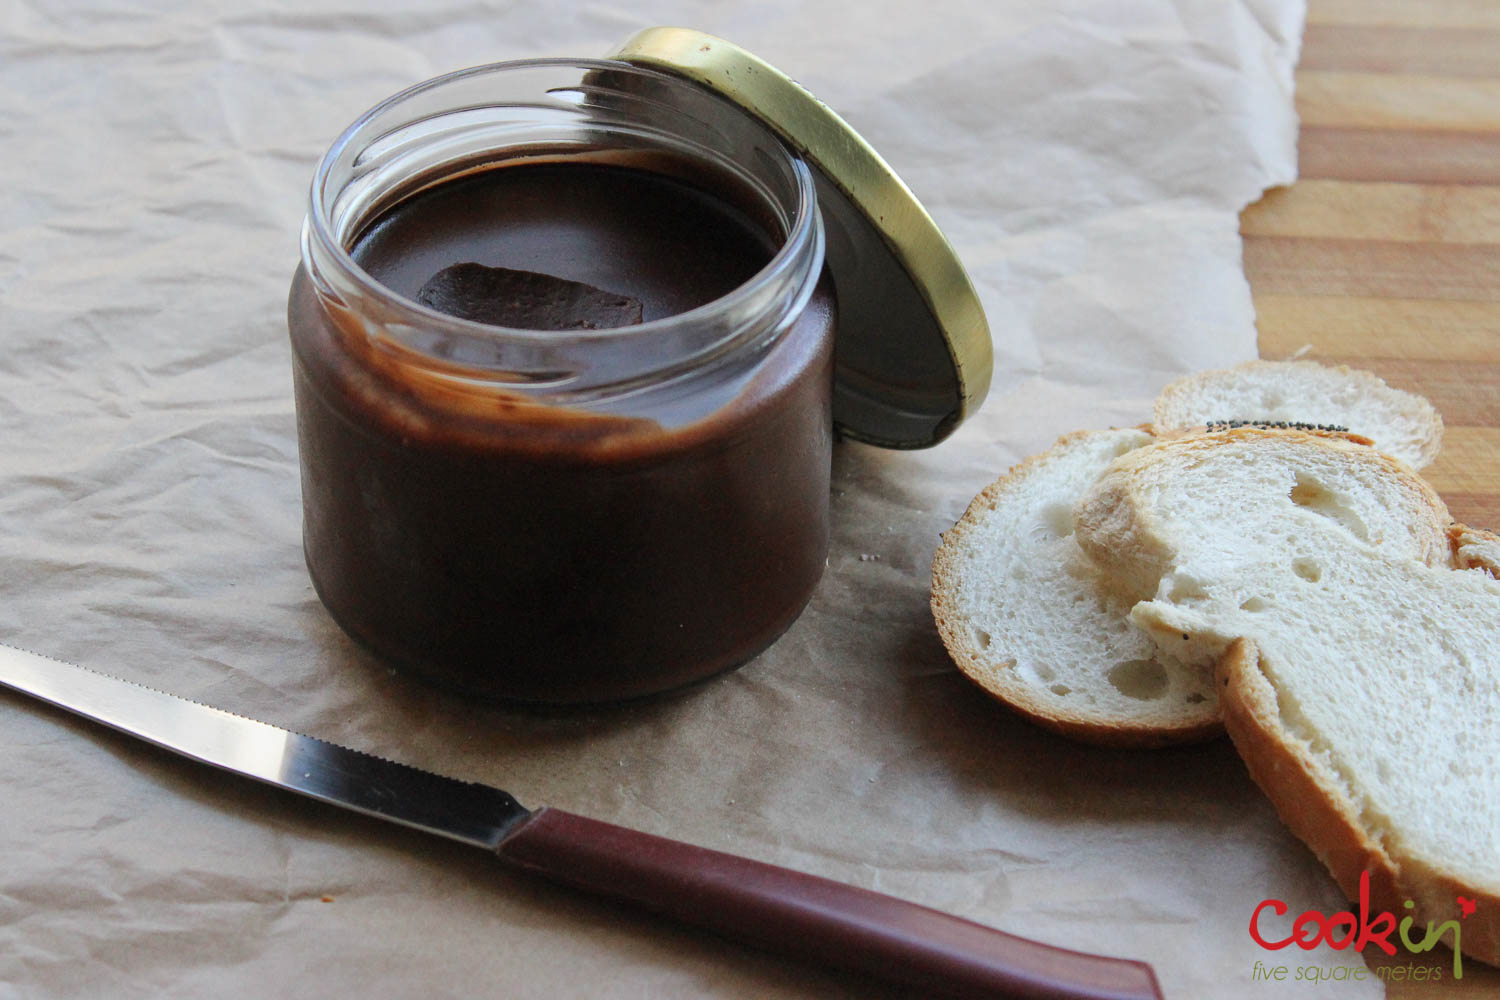 chocolate hazelnut spread 3 cups hazelnuts 150g dark chocolate 1 tbsp ...